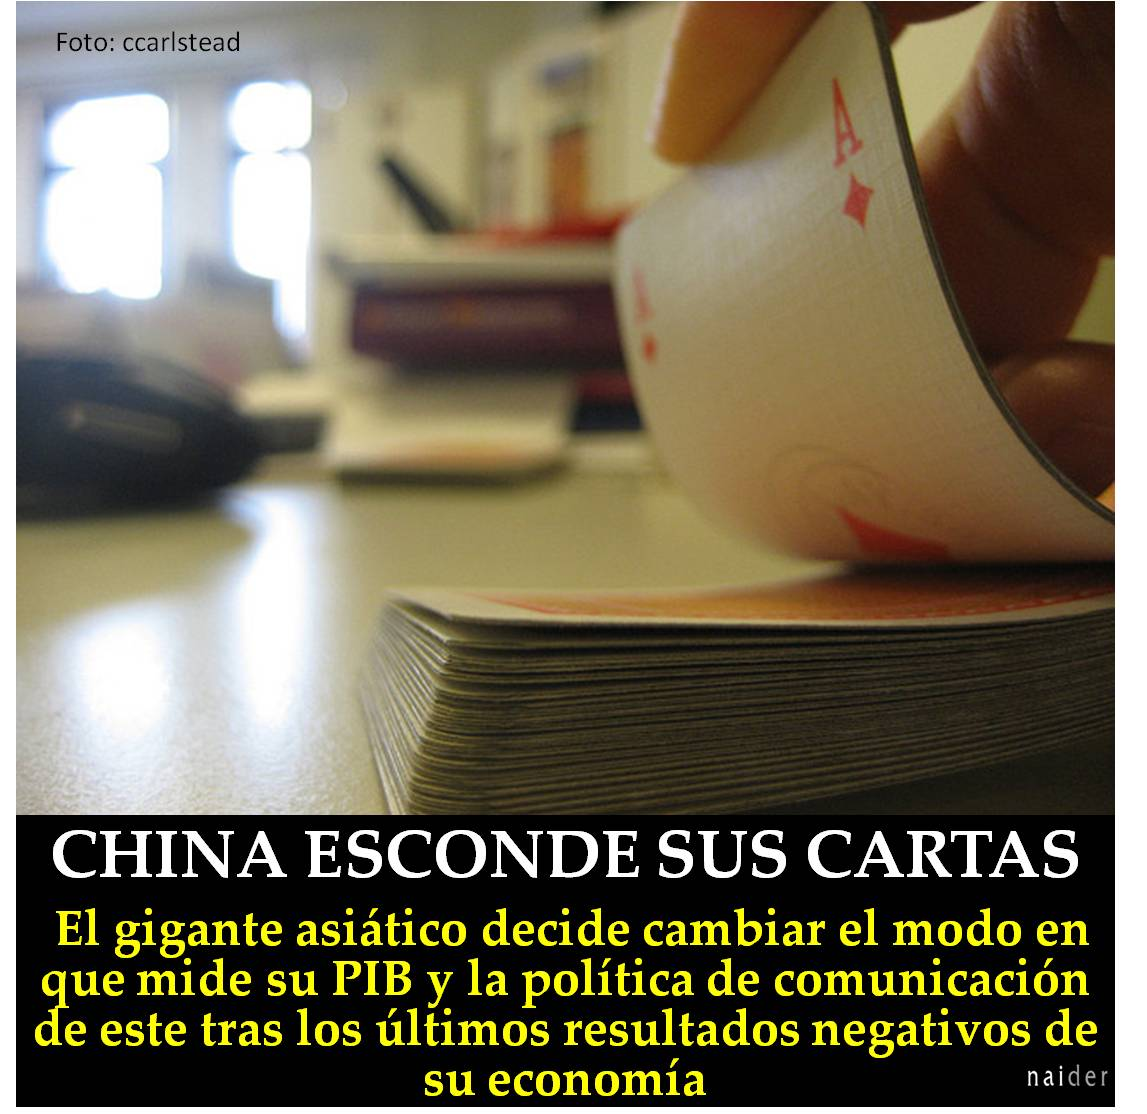 China, esconde sus cartas